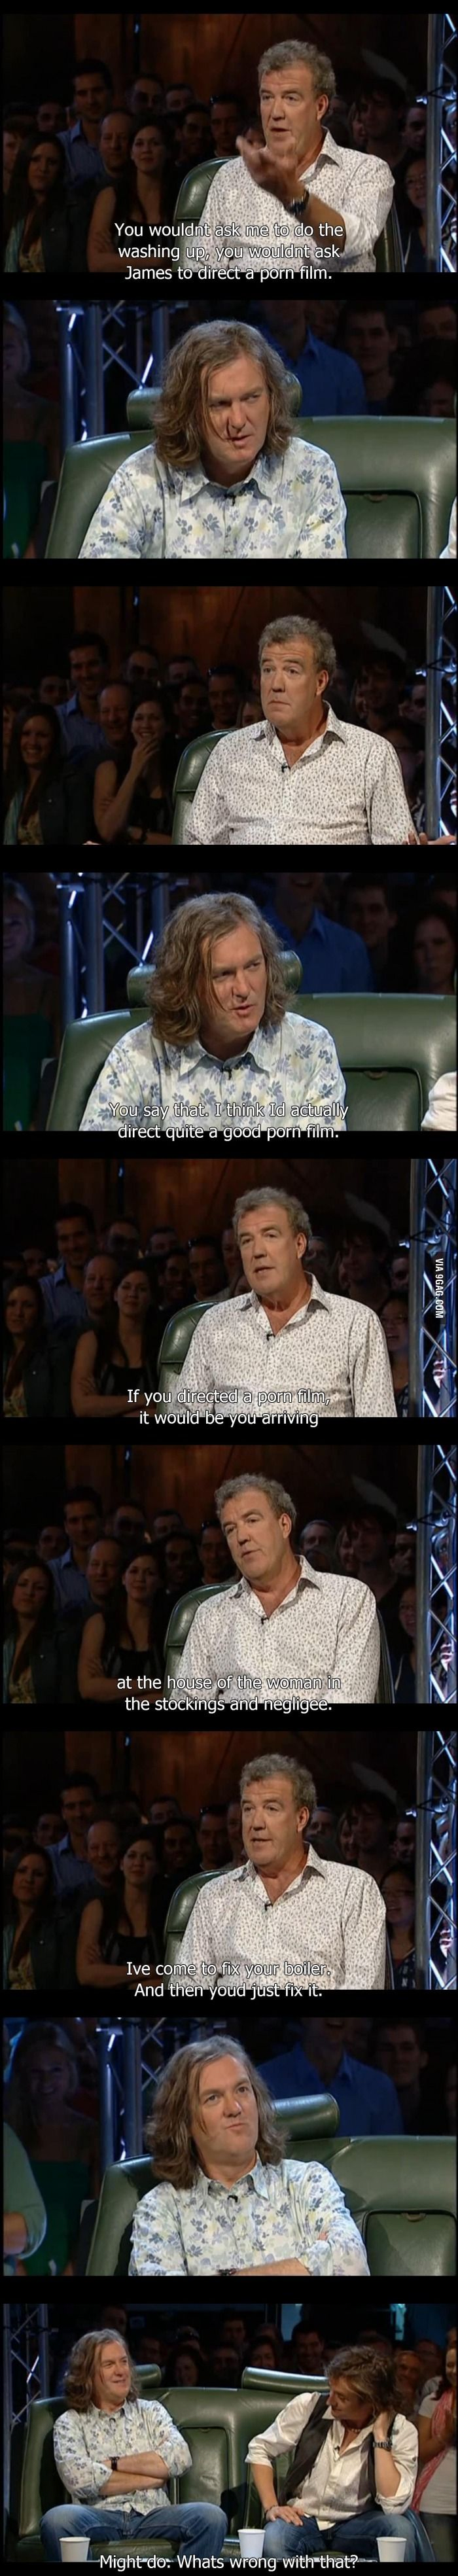 Top Gear never fails to make me laugh.